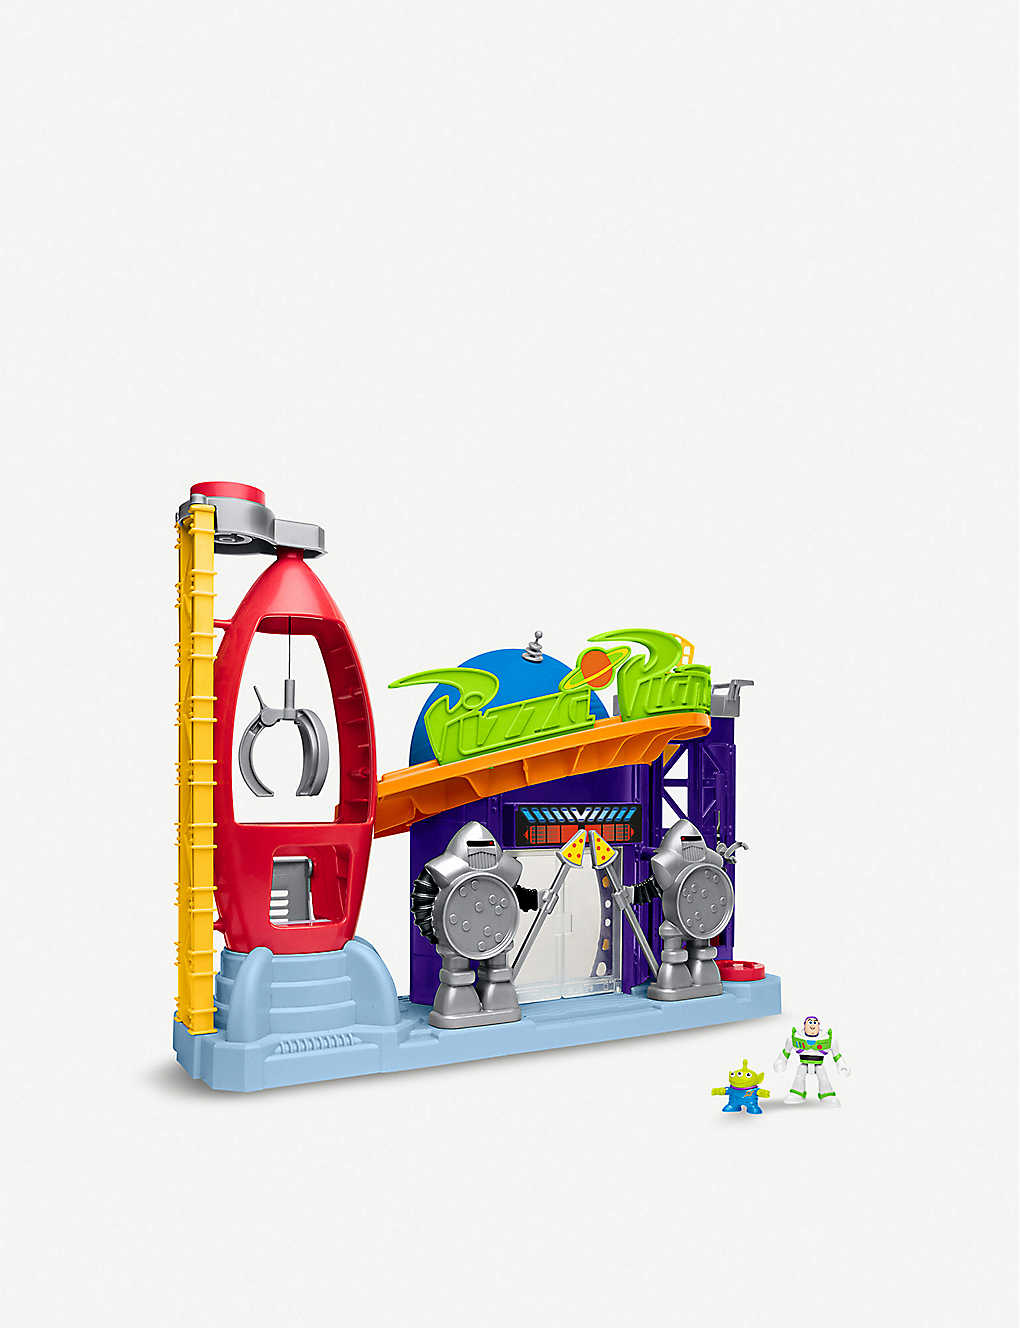 TOY STORY: Disney Pizza Planet play set